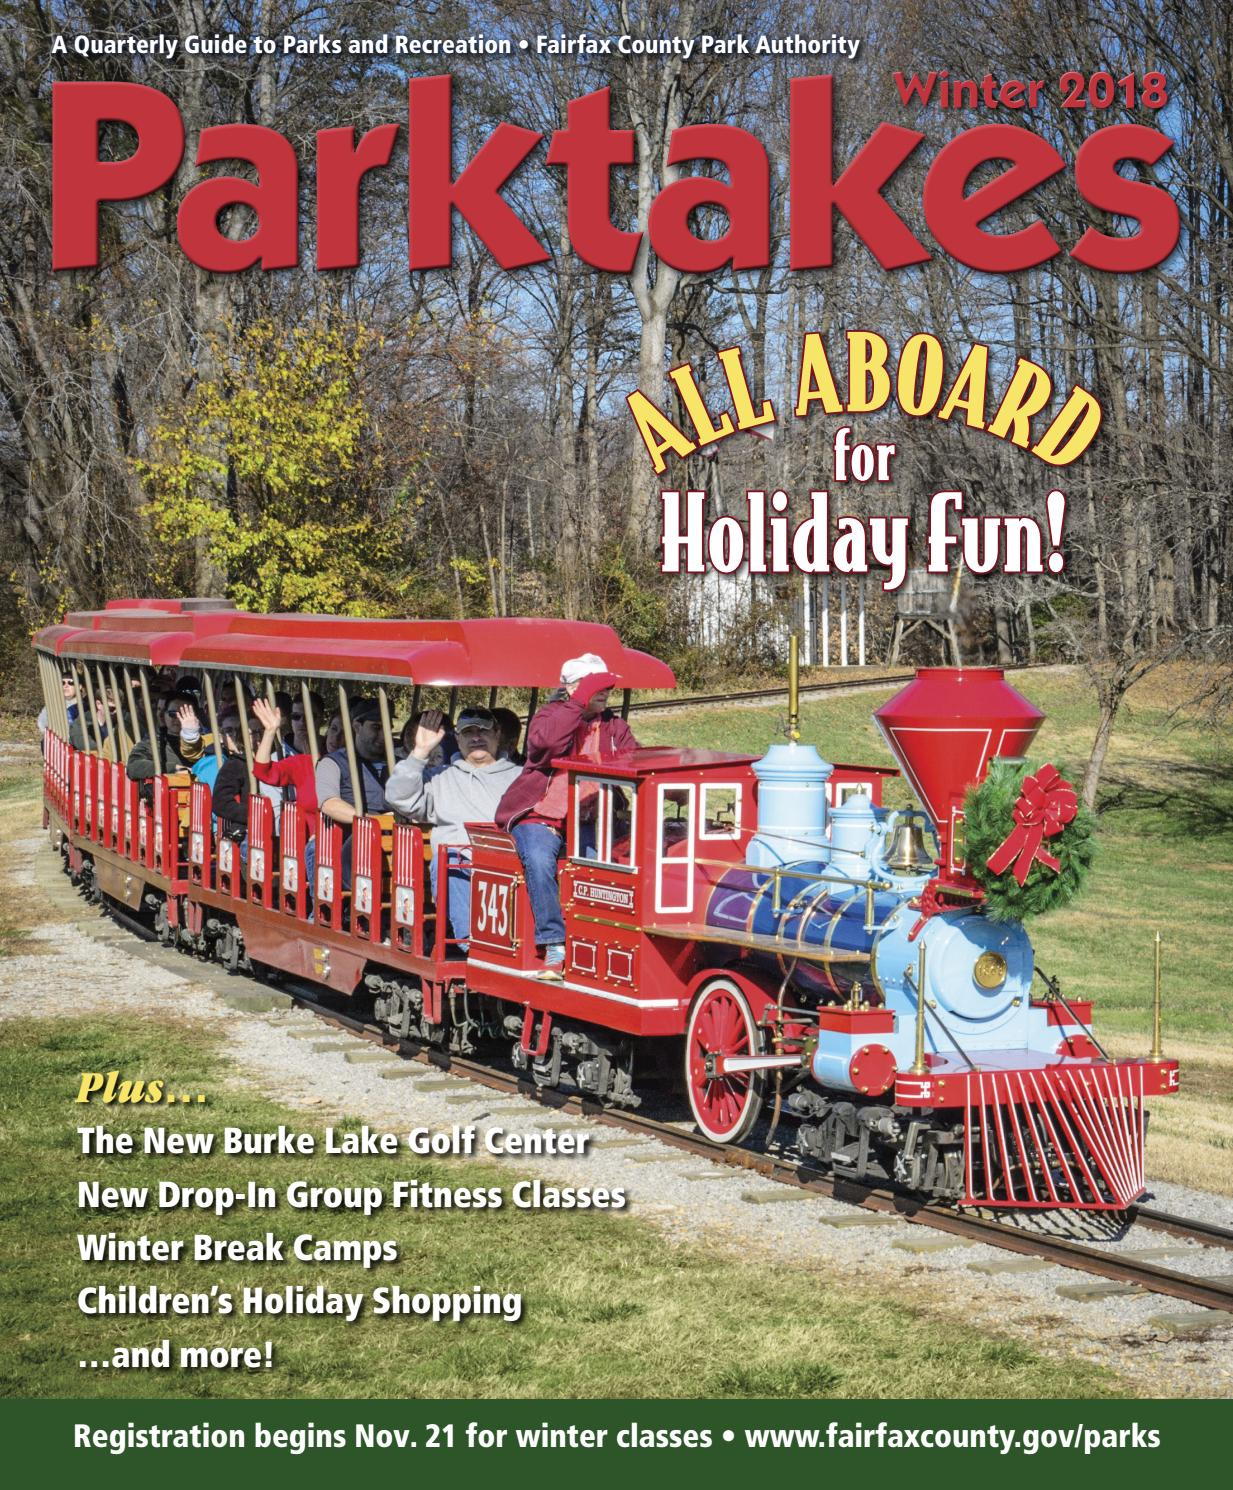 Winter Parktakes 2018 By Fairfax County Park Authority Issuu Left The First Shreeve Mechanical Amplifier Date Approx 1904